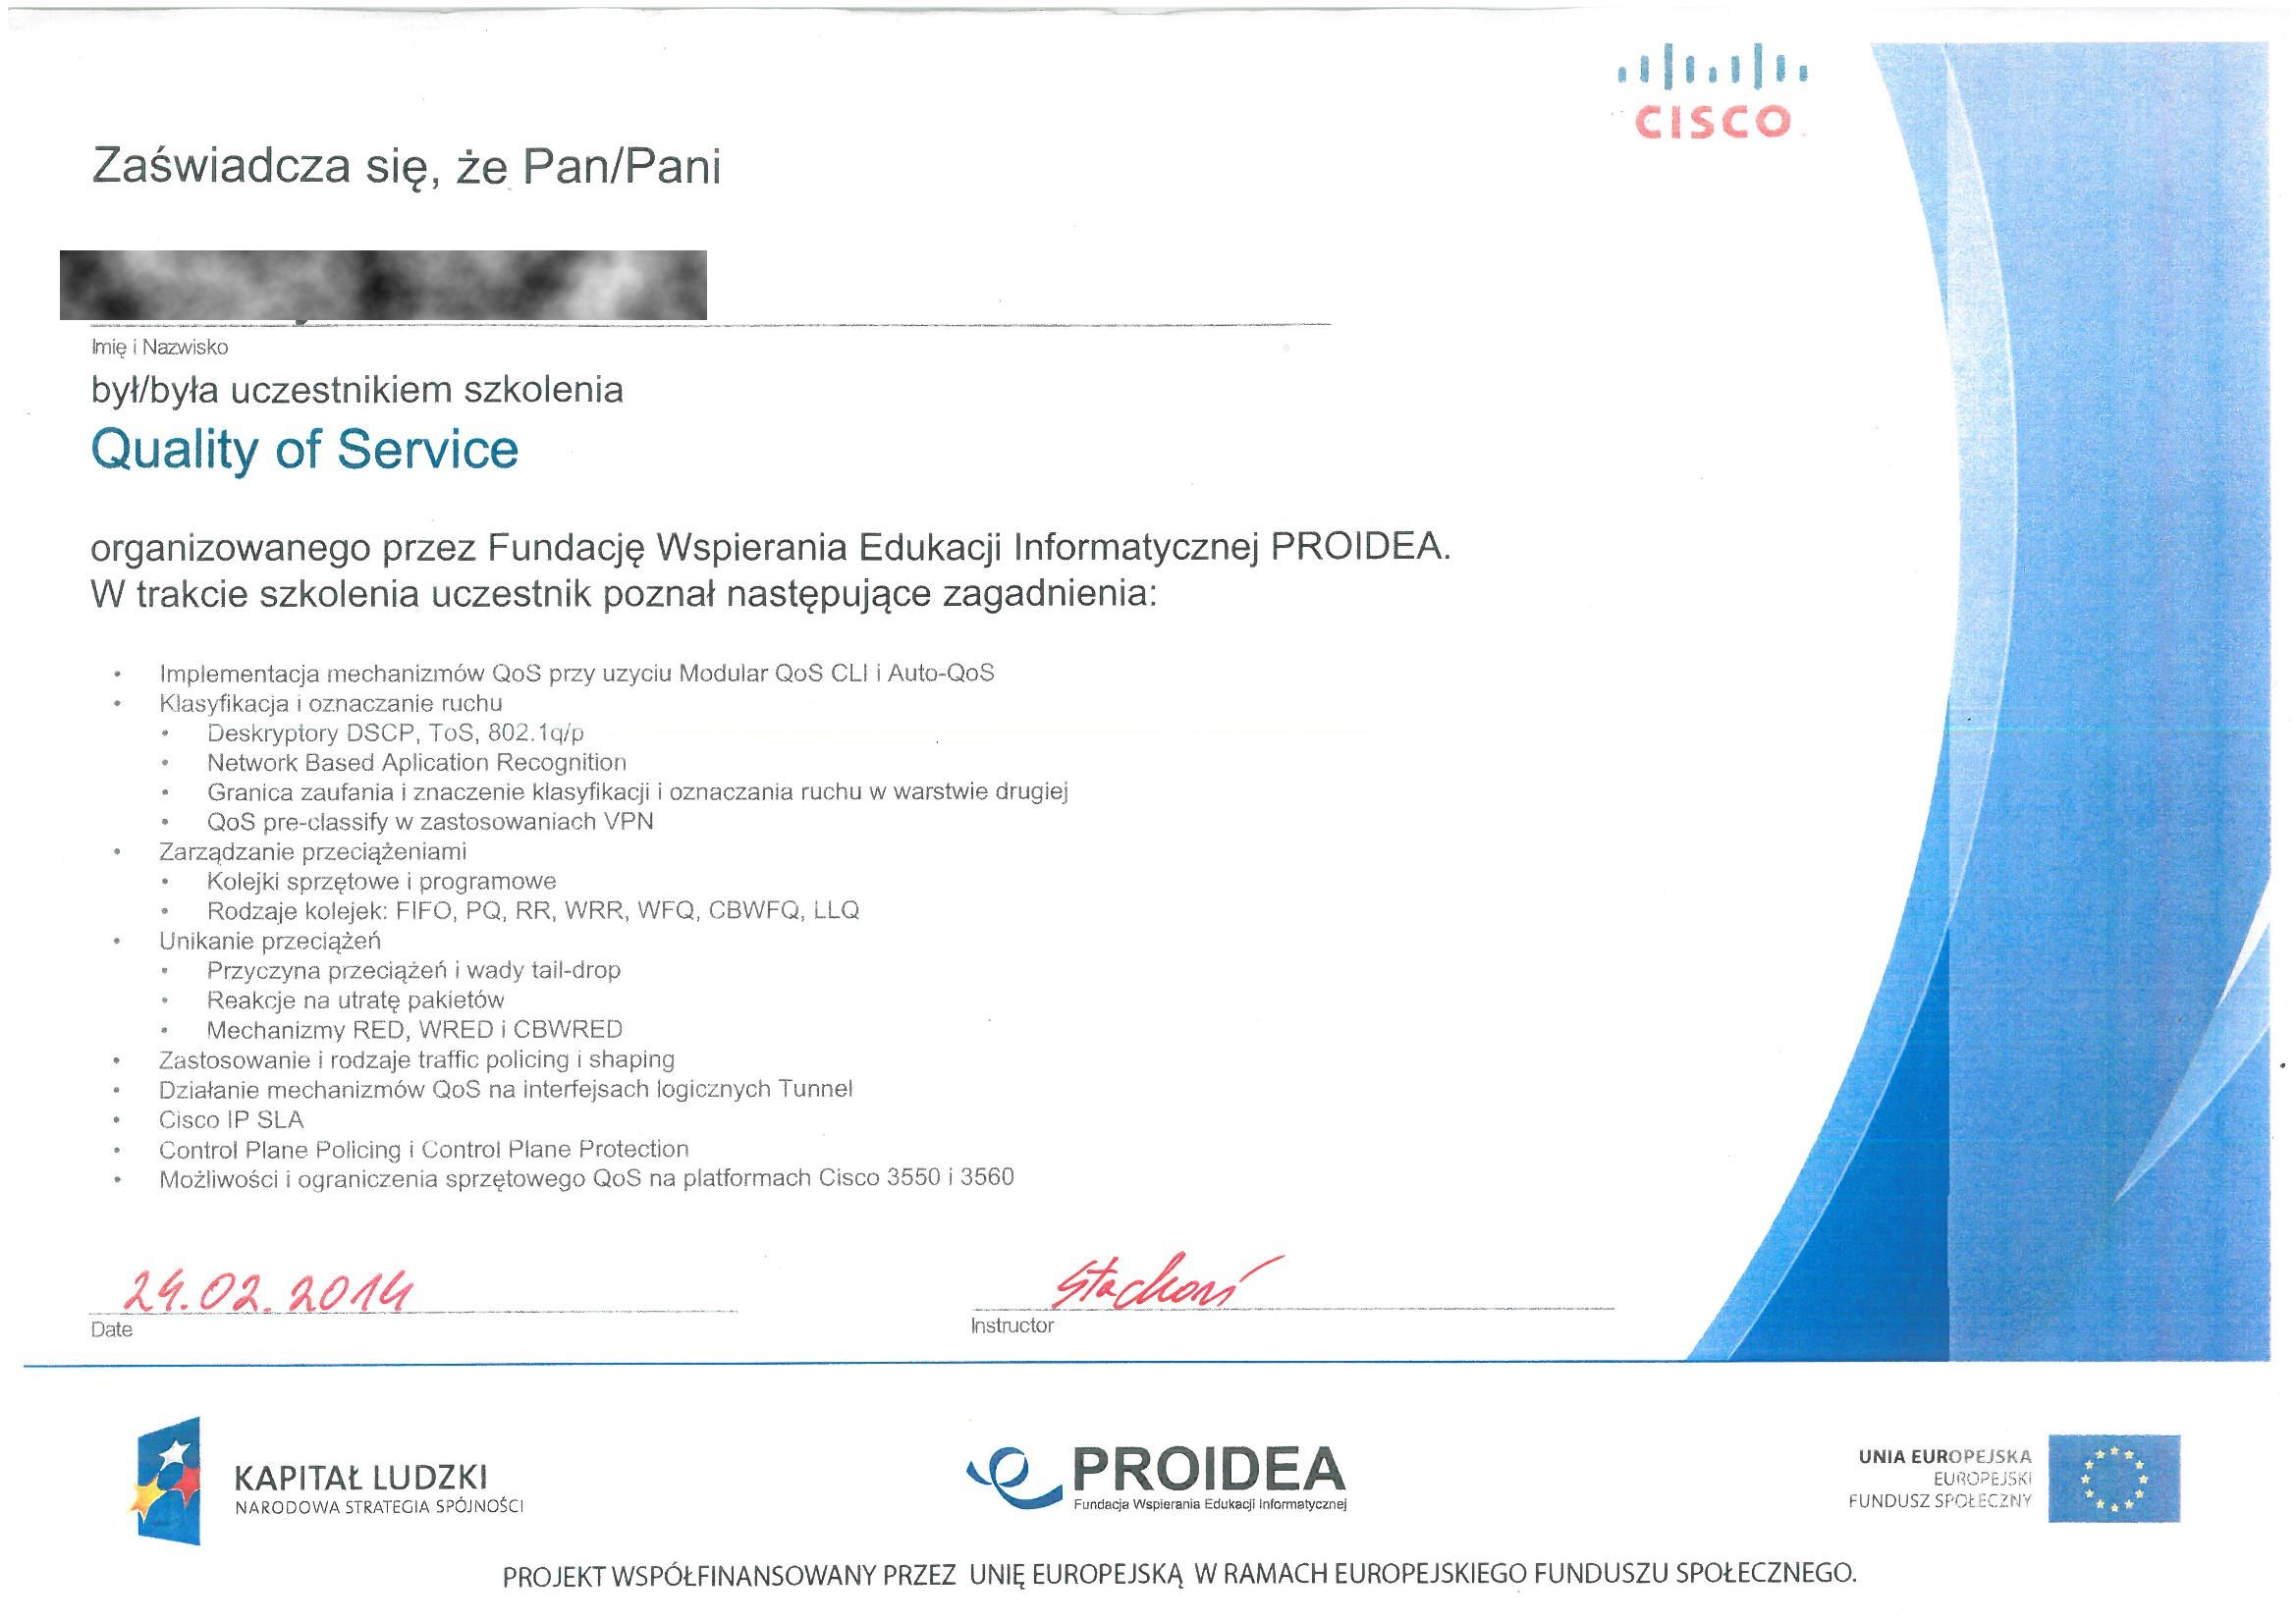 CISCO 2014 ŁK Quality of Service RODO